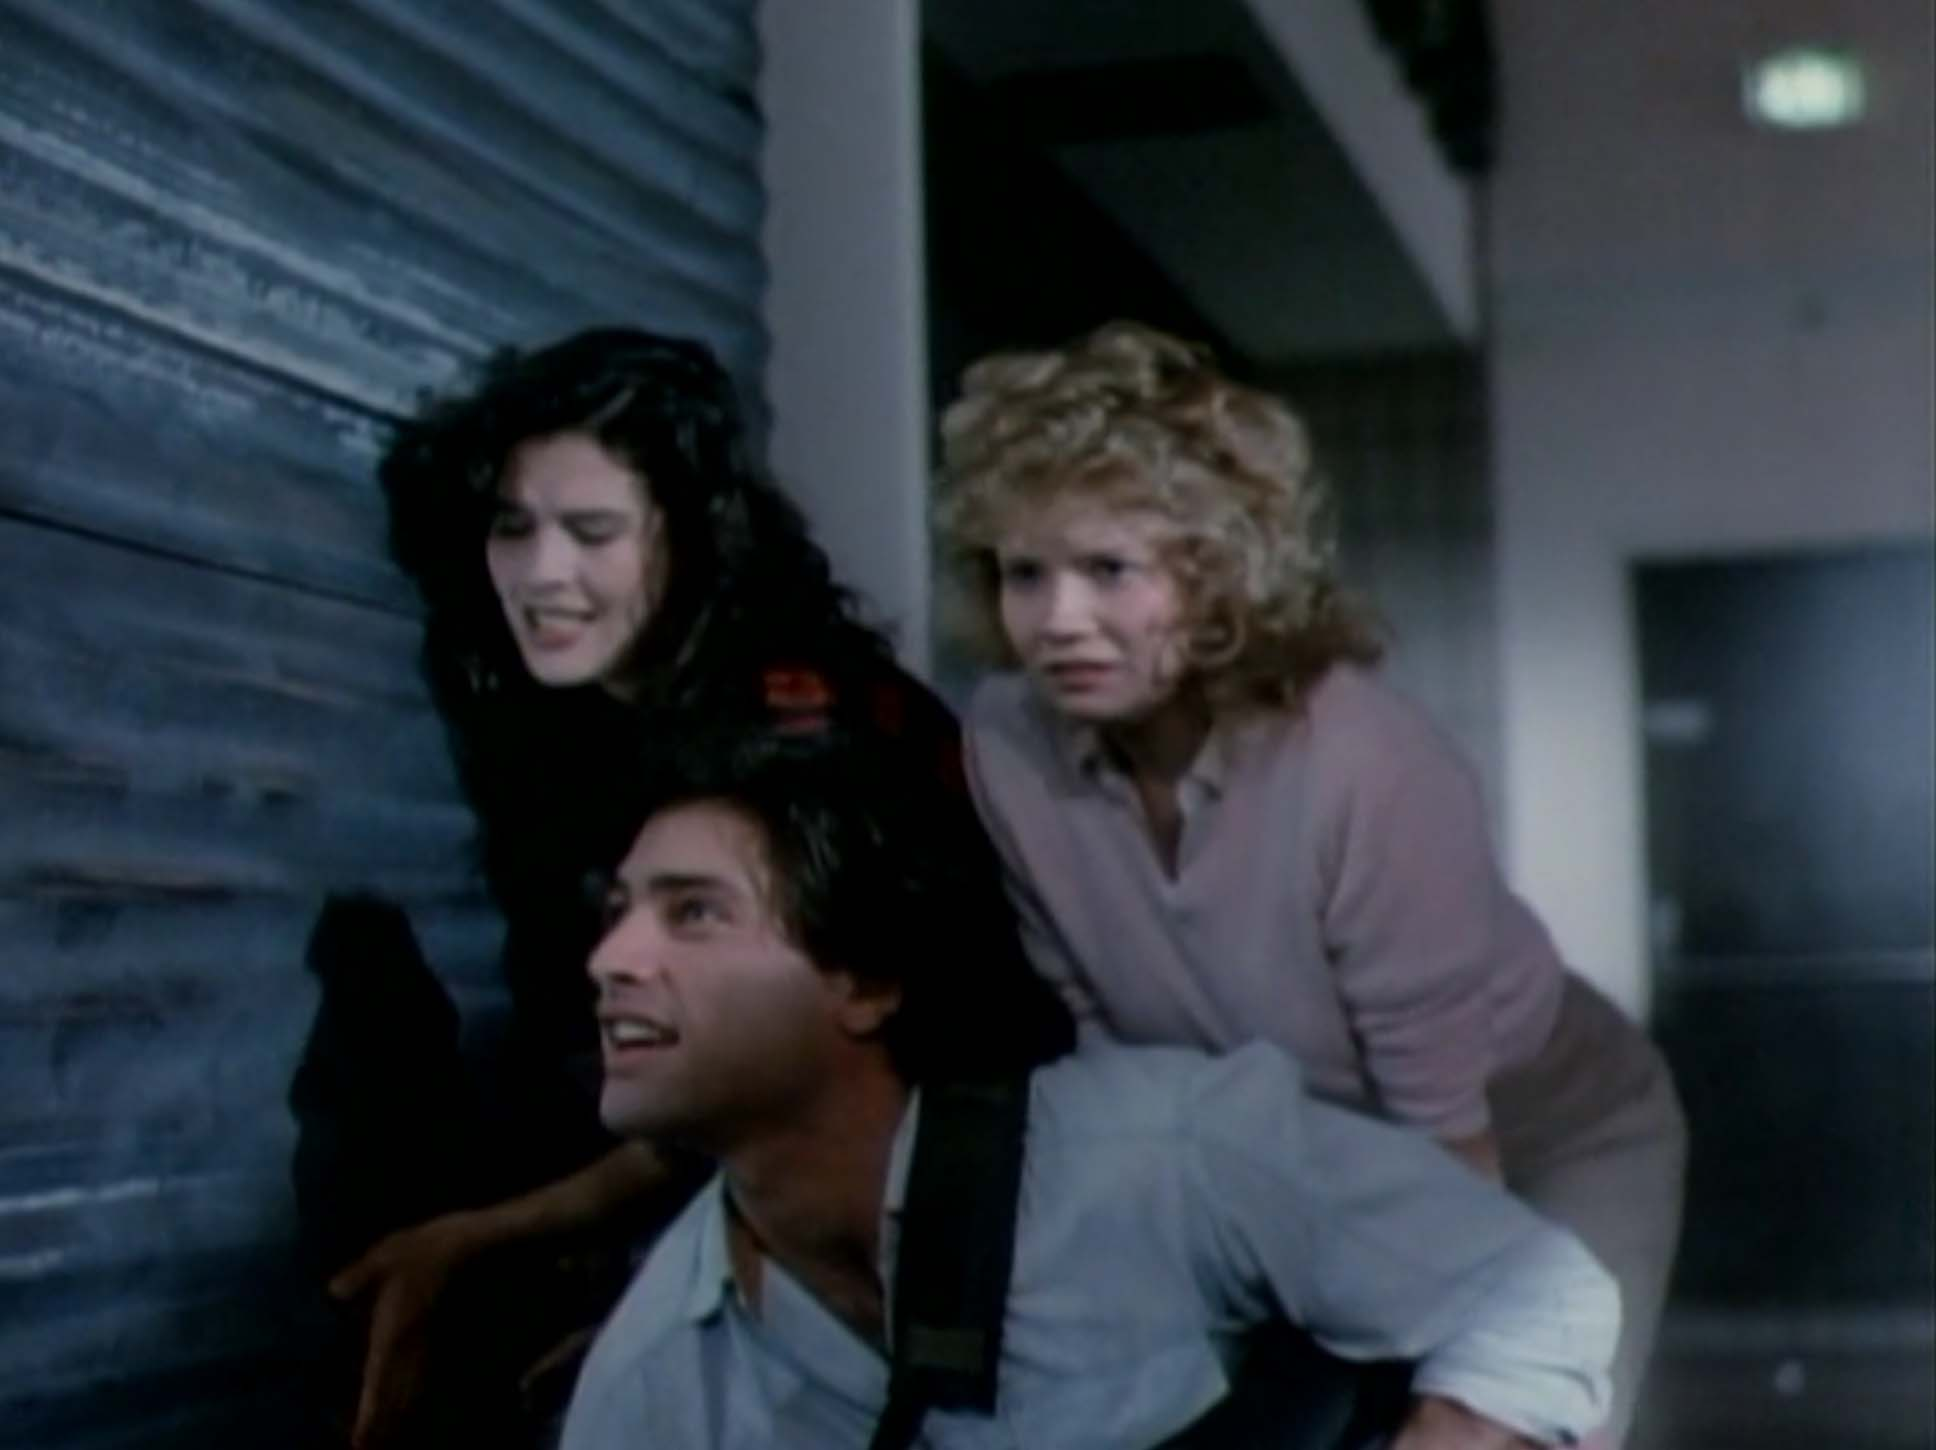 Kelli Maroney, Karrie Emerson and Russell Todd in Chopping Mall (1986)